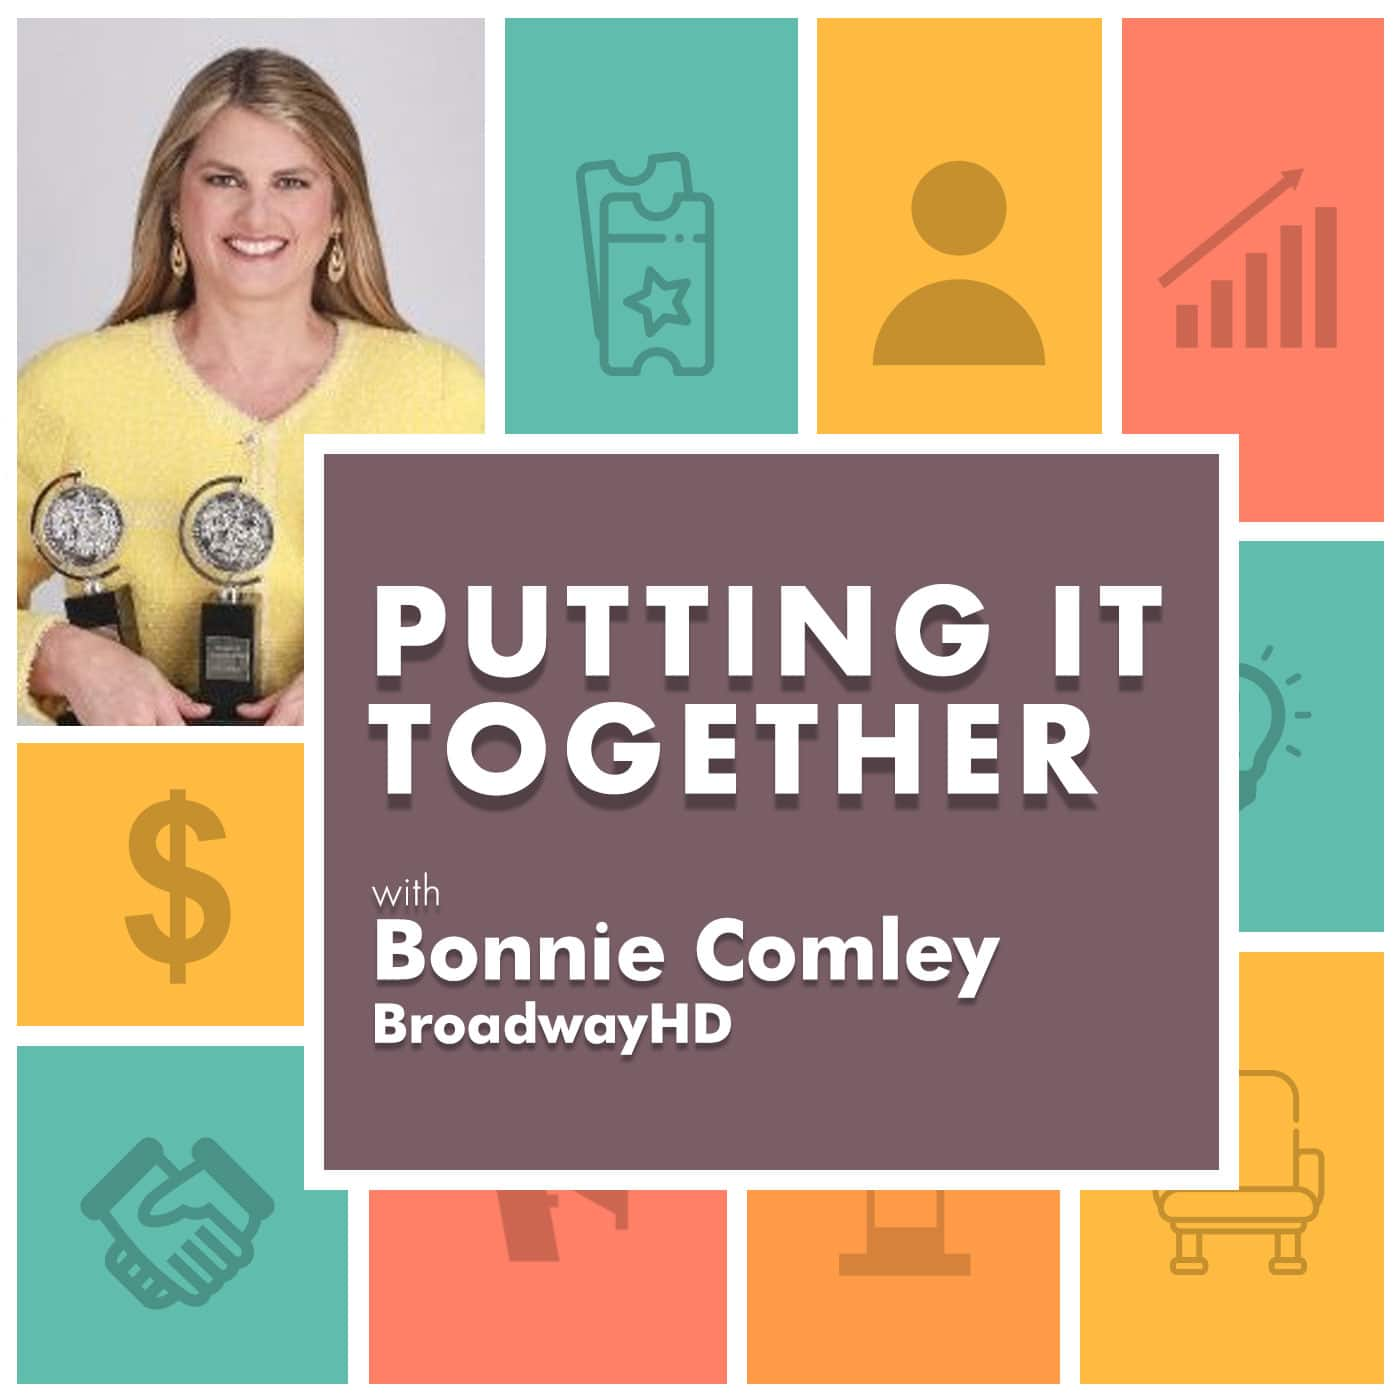 Putting It Together Episode 4 Bonnie Comley